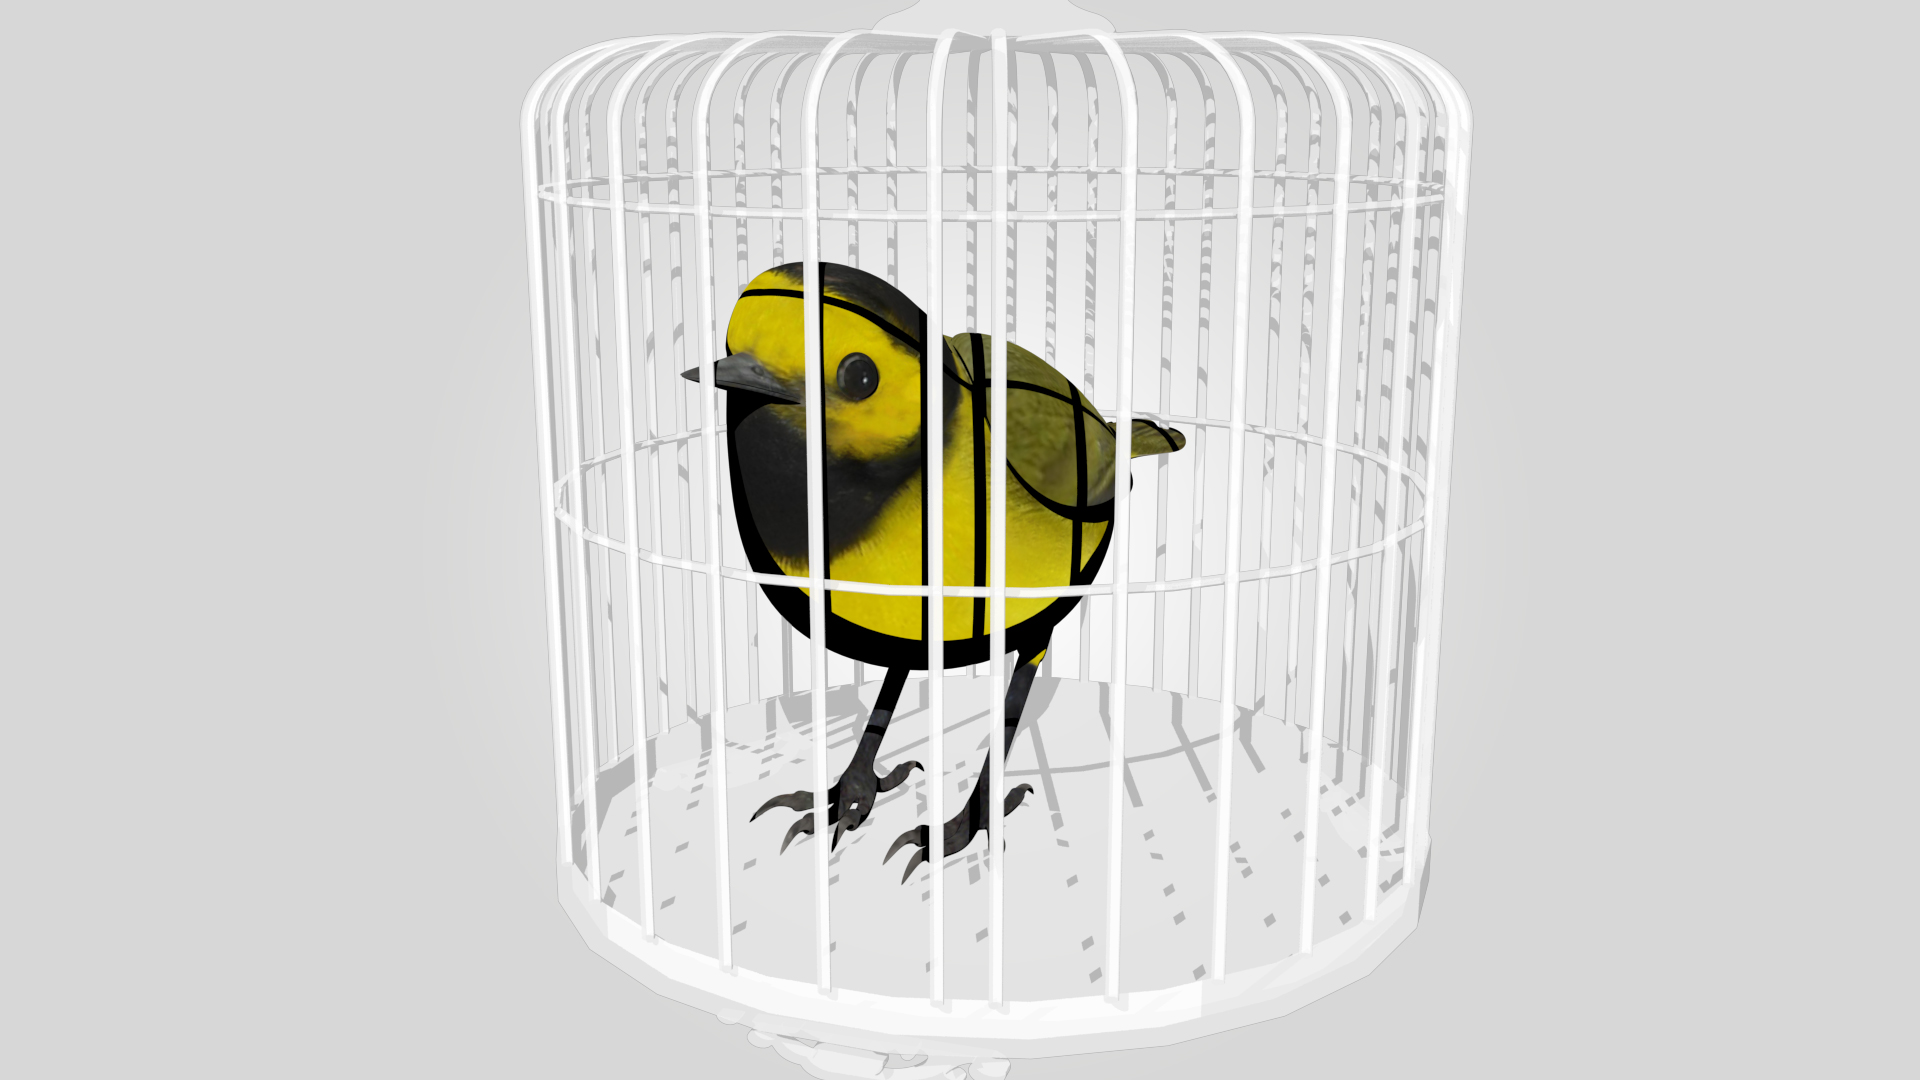 The bird is sitting inside the cage to move to the new home.